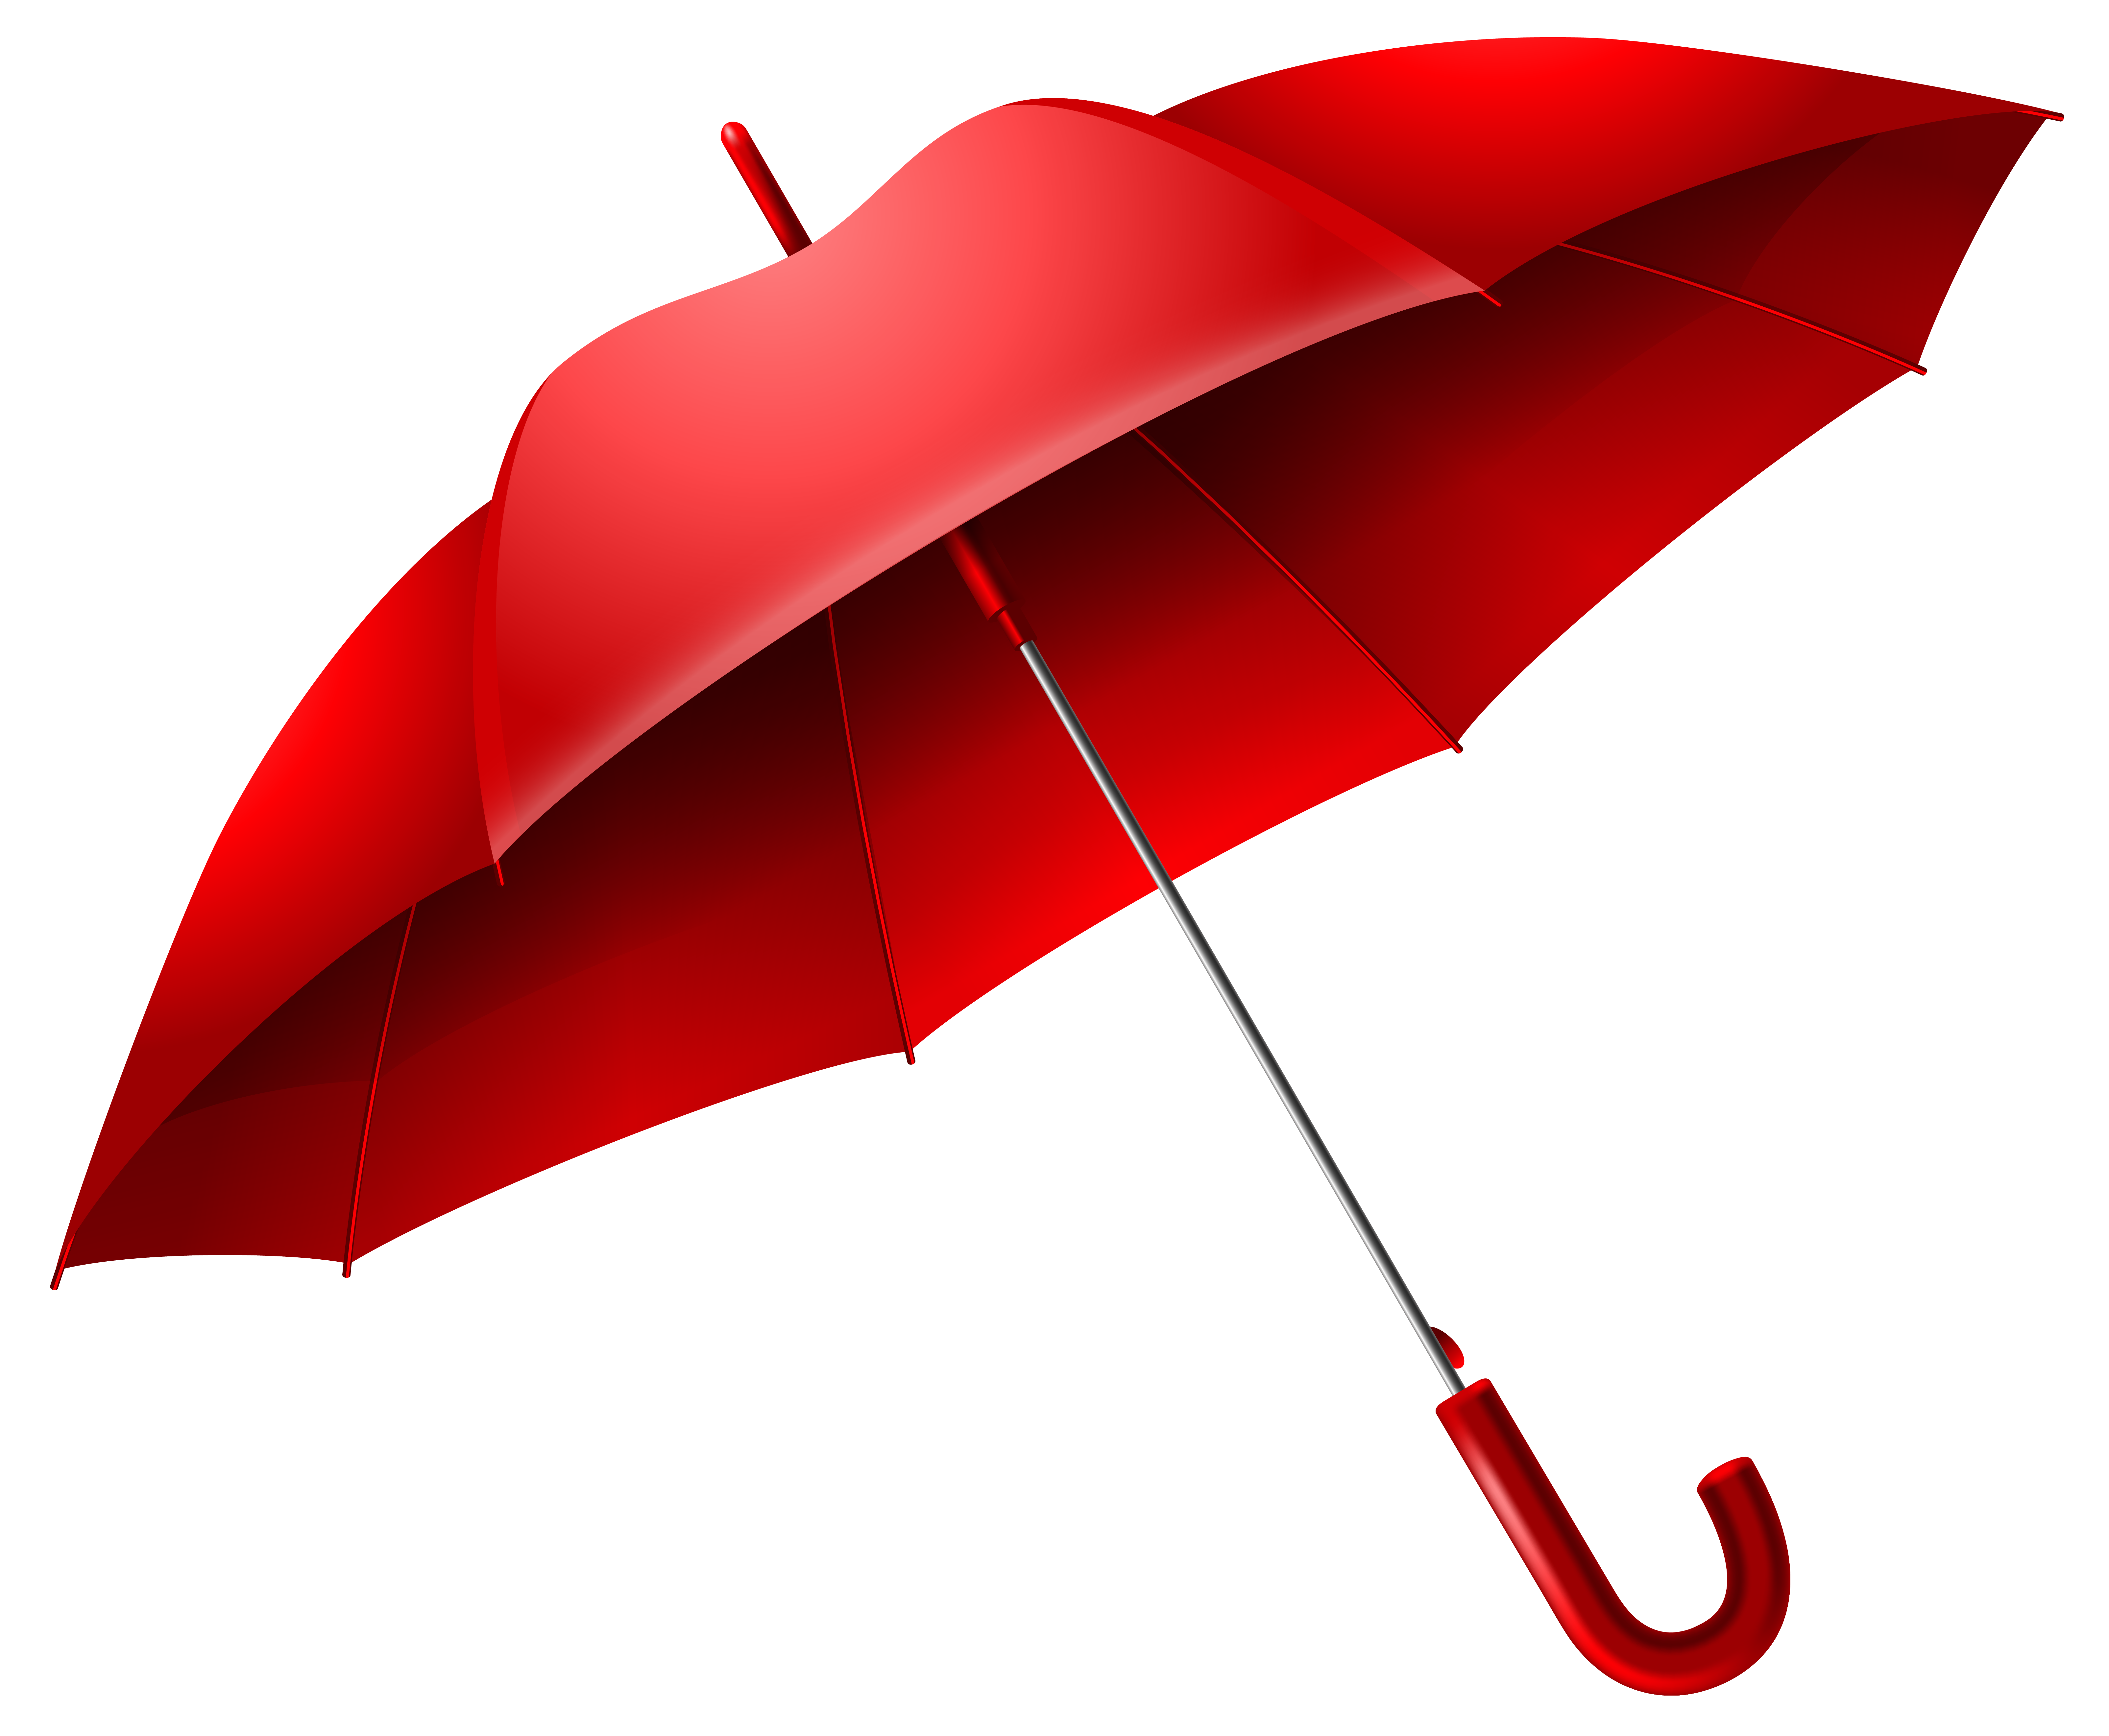 Red umbrella png. Clipart image gallery yopriceville